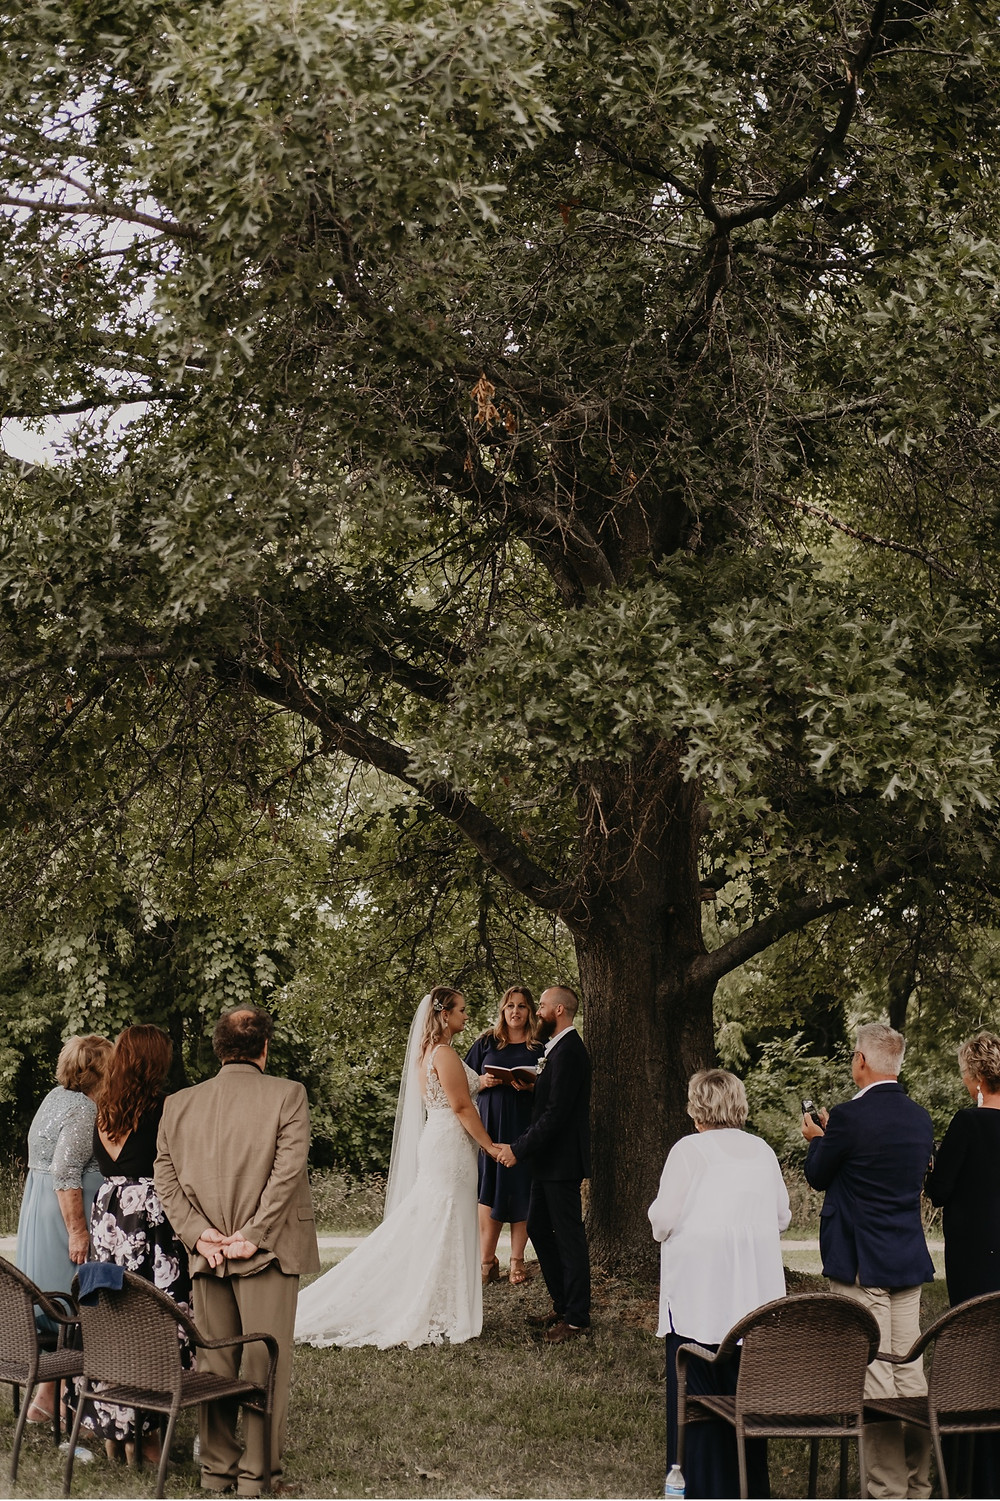 Bride and groom getting married under a tree in Metro Detroit. Photographed by Nicole Leanne Photography.